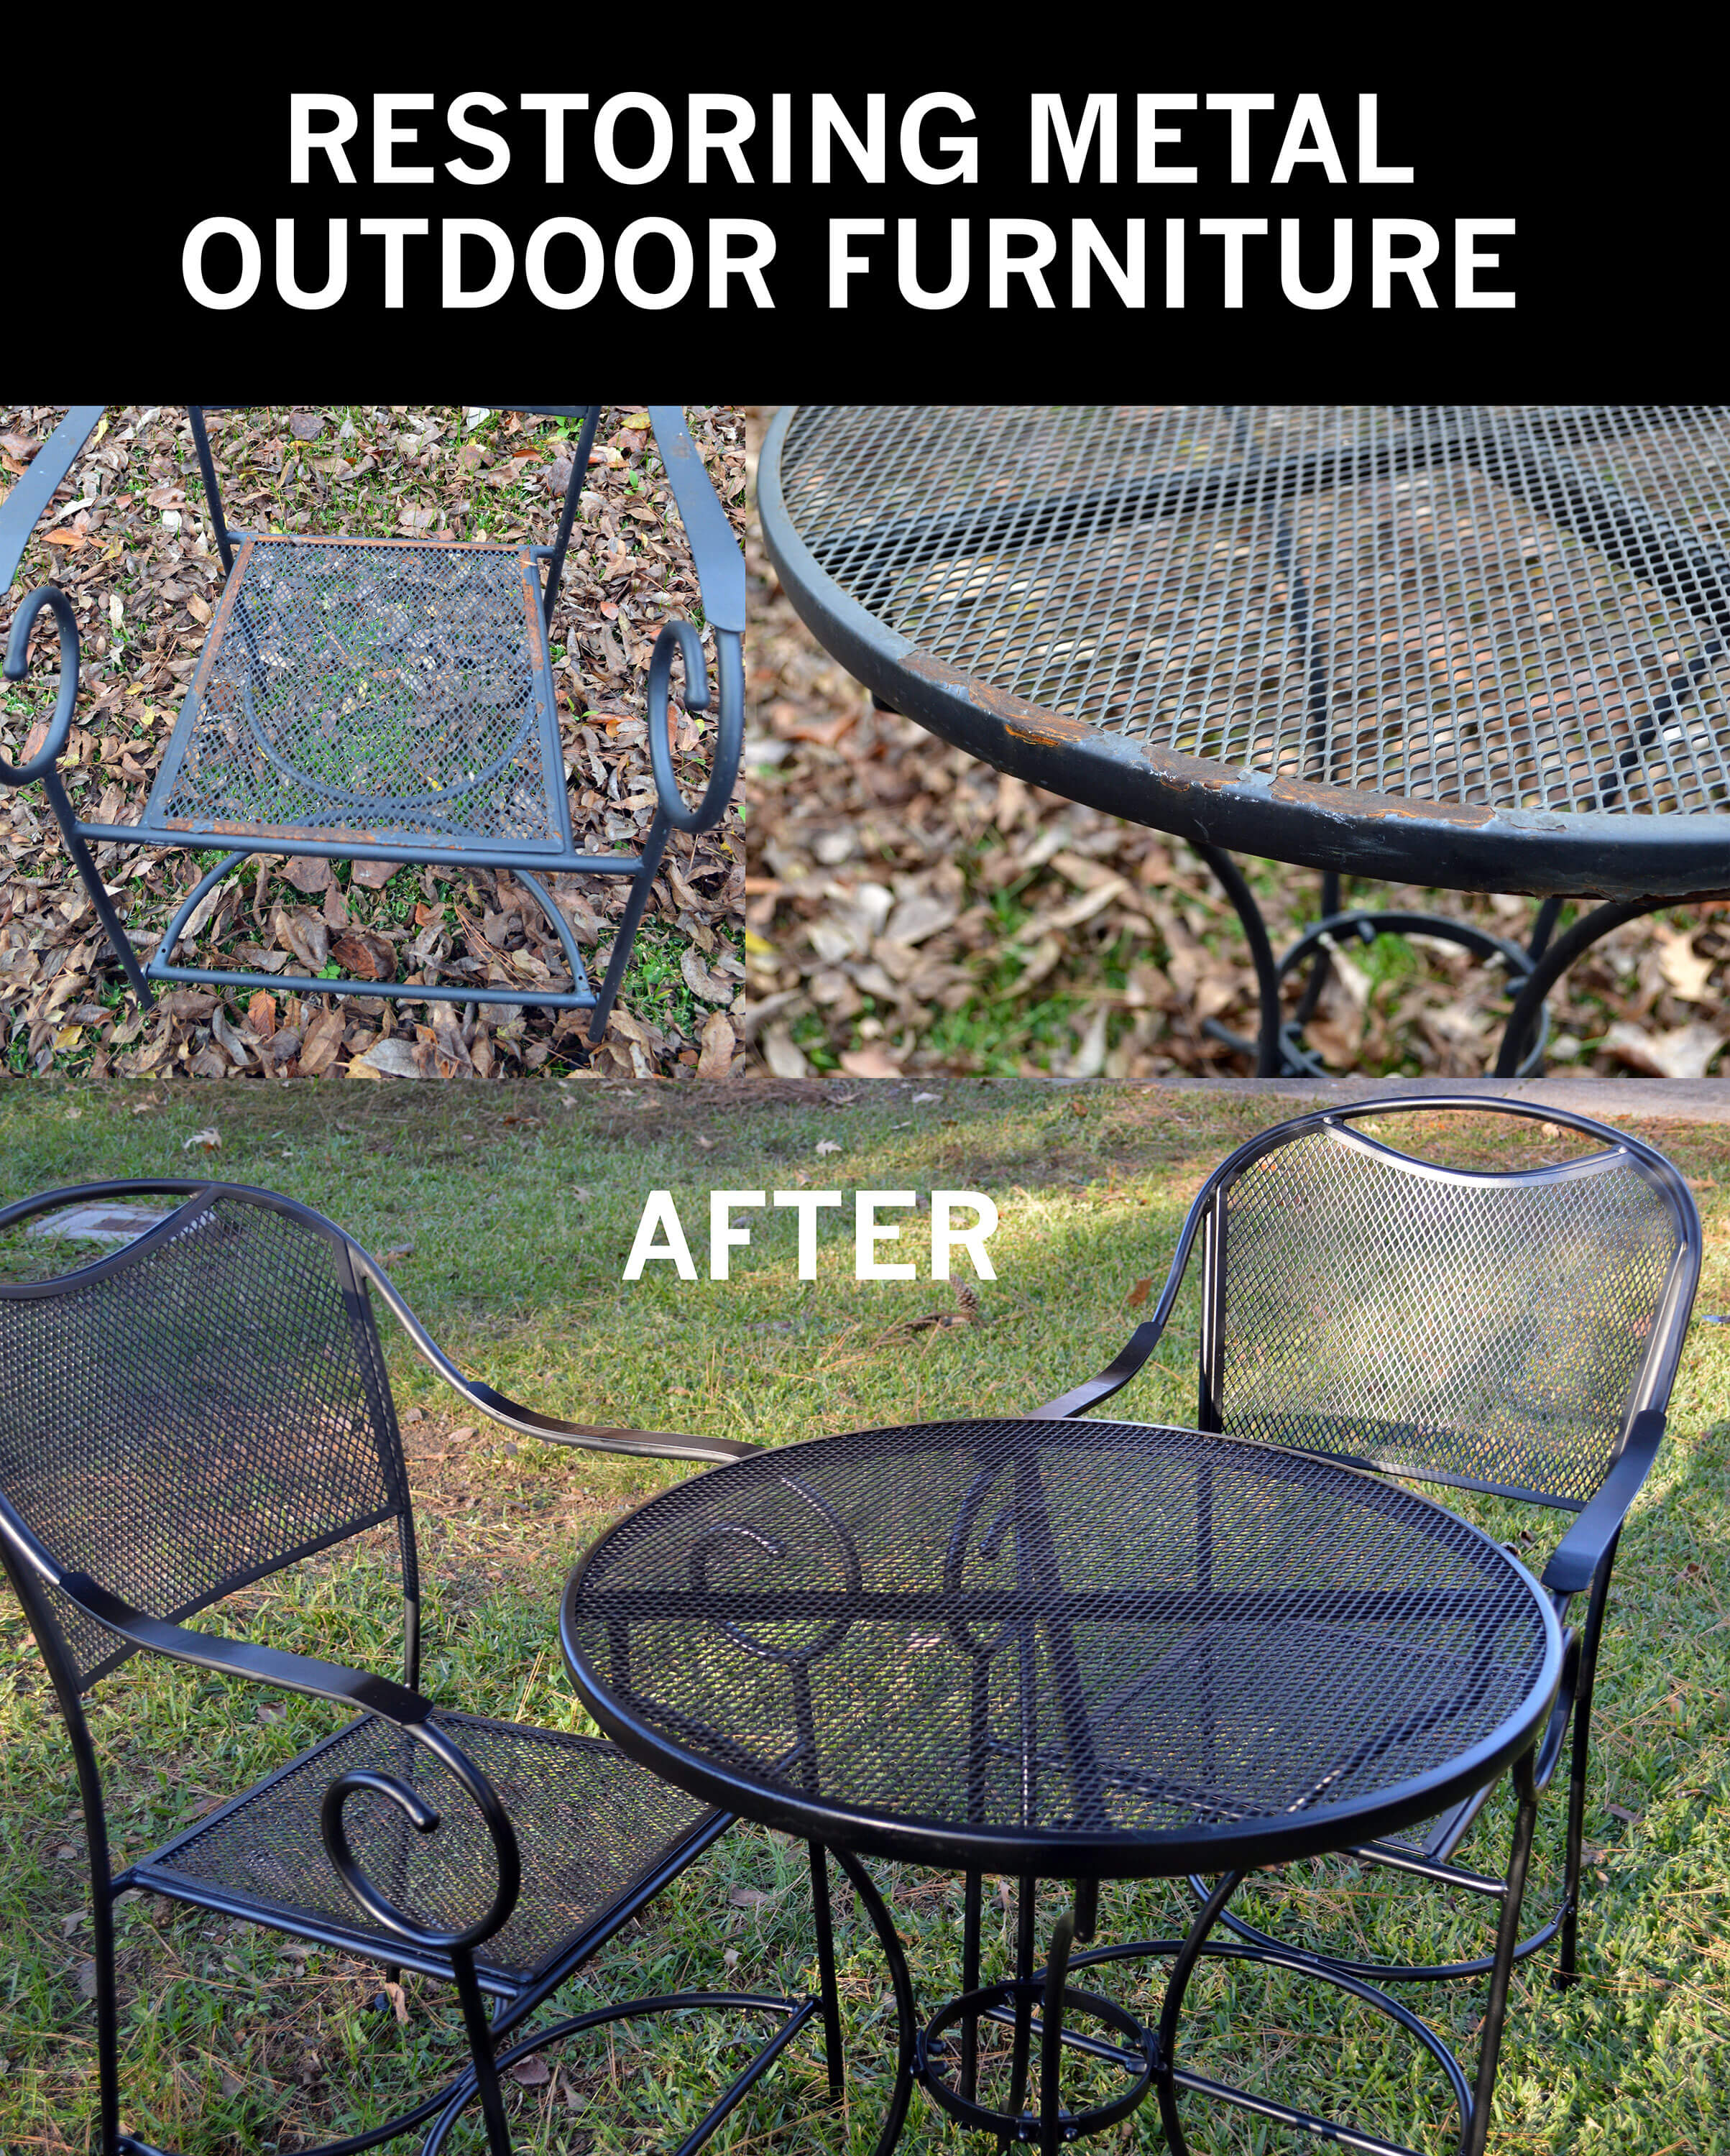 Wondrous Restore Metal Outdoor Furniture To Like New Short Links Chair Design For Home Short Linksinfo